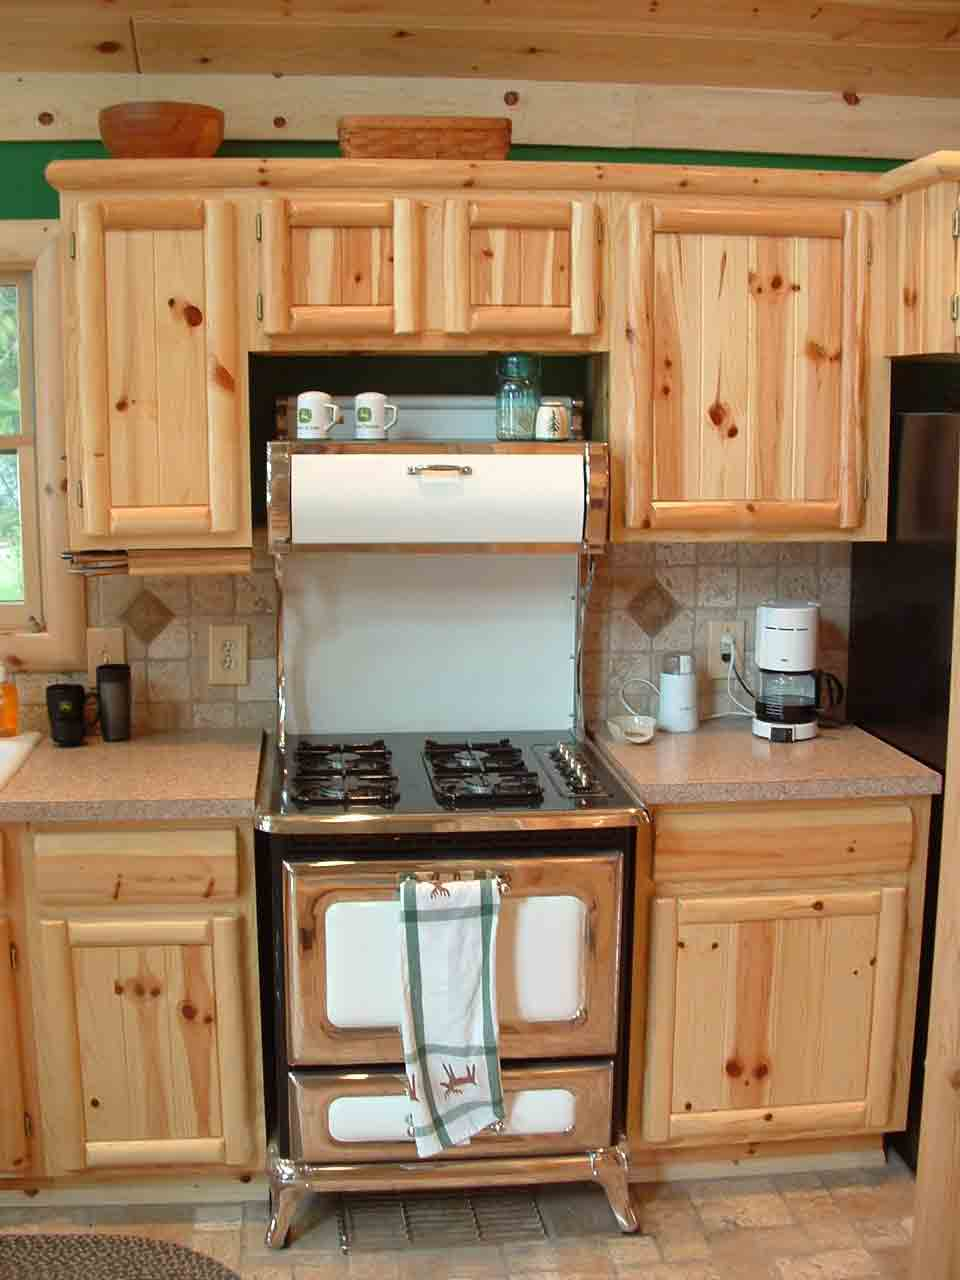 Knotty pine kitchen cabinets wholesale roselawnlutheran for Cabinetry kitchen cabinets